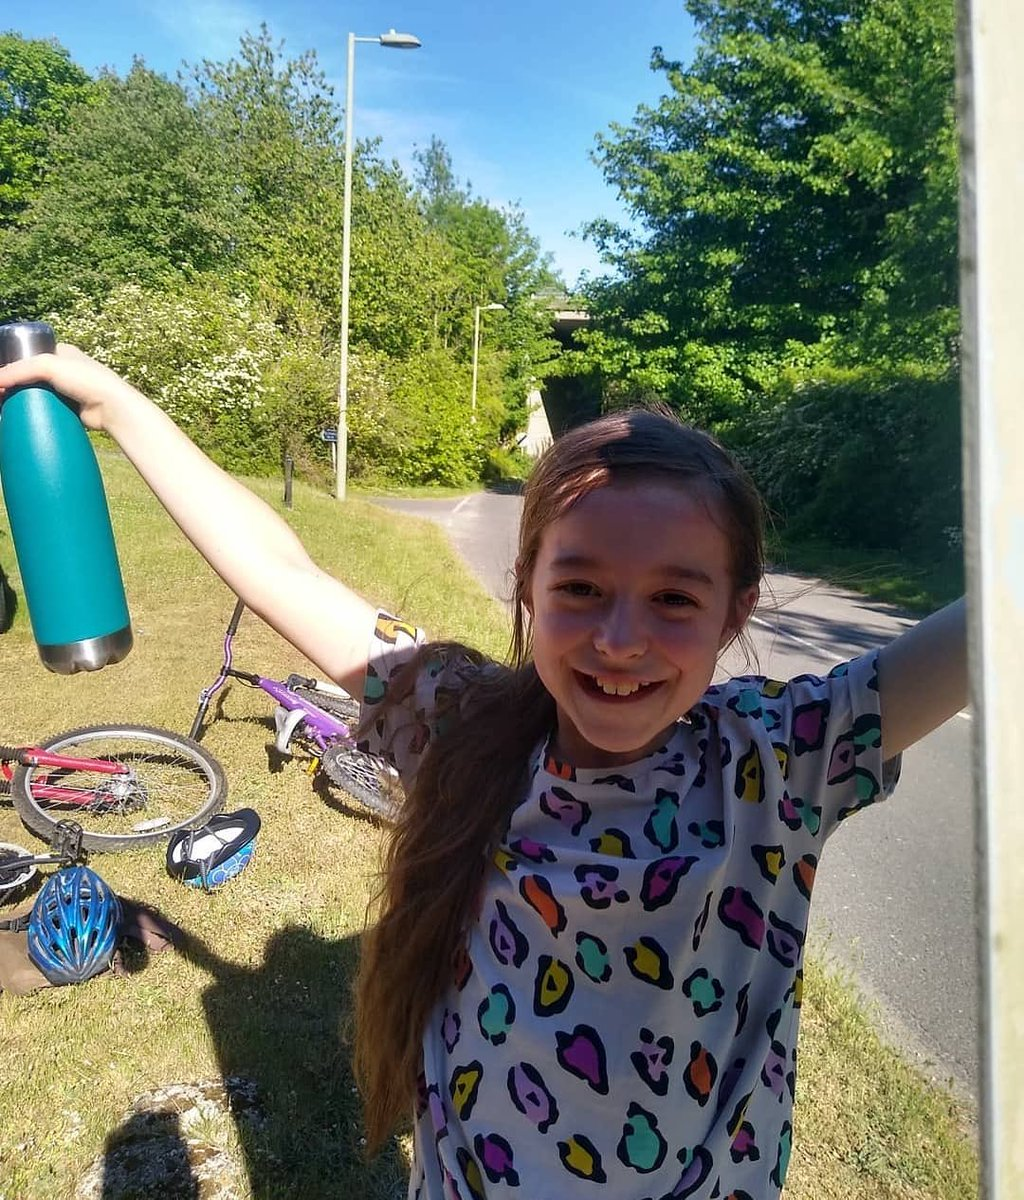 @StLawrenceCEPr1  our latest mini broadcaster on @weyvalleyradio #goodnews #feelgood series from @StLawrenceCEPr1 is Harriet Senior from grade 5. An absolute superstar  #101.1fm  http://www. weyvalleyradio.uk     it's ALL the good stuff <br>http://pic.twitter.com/TnJSoyVZaz